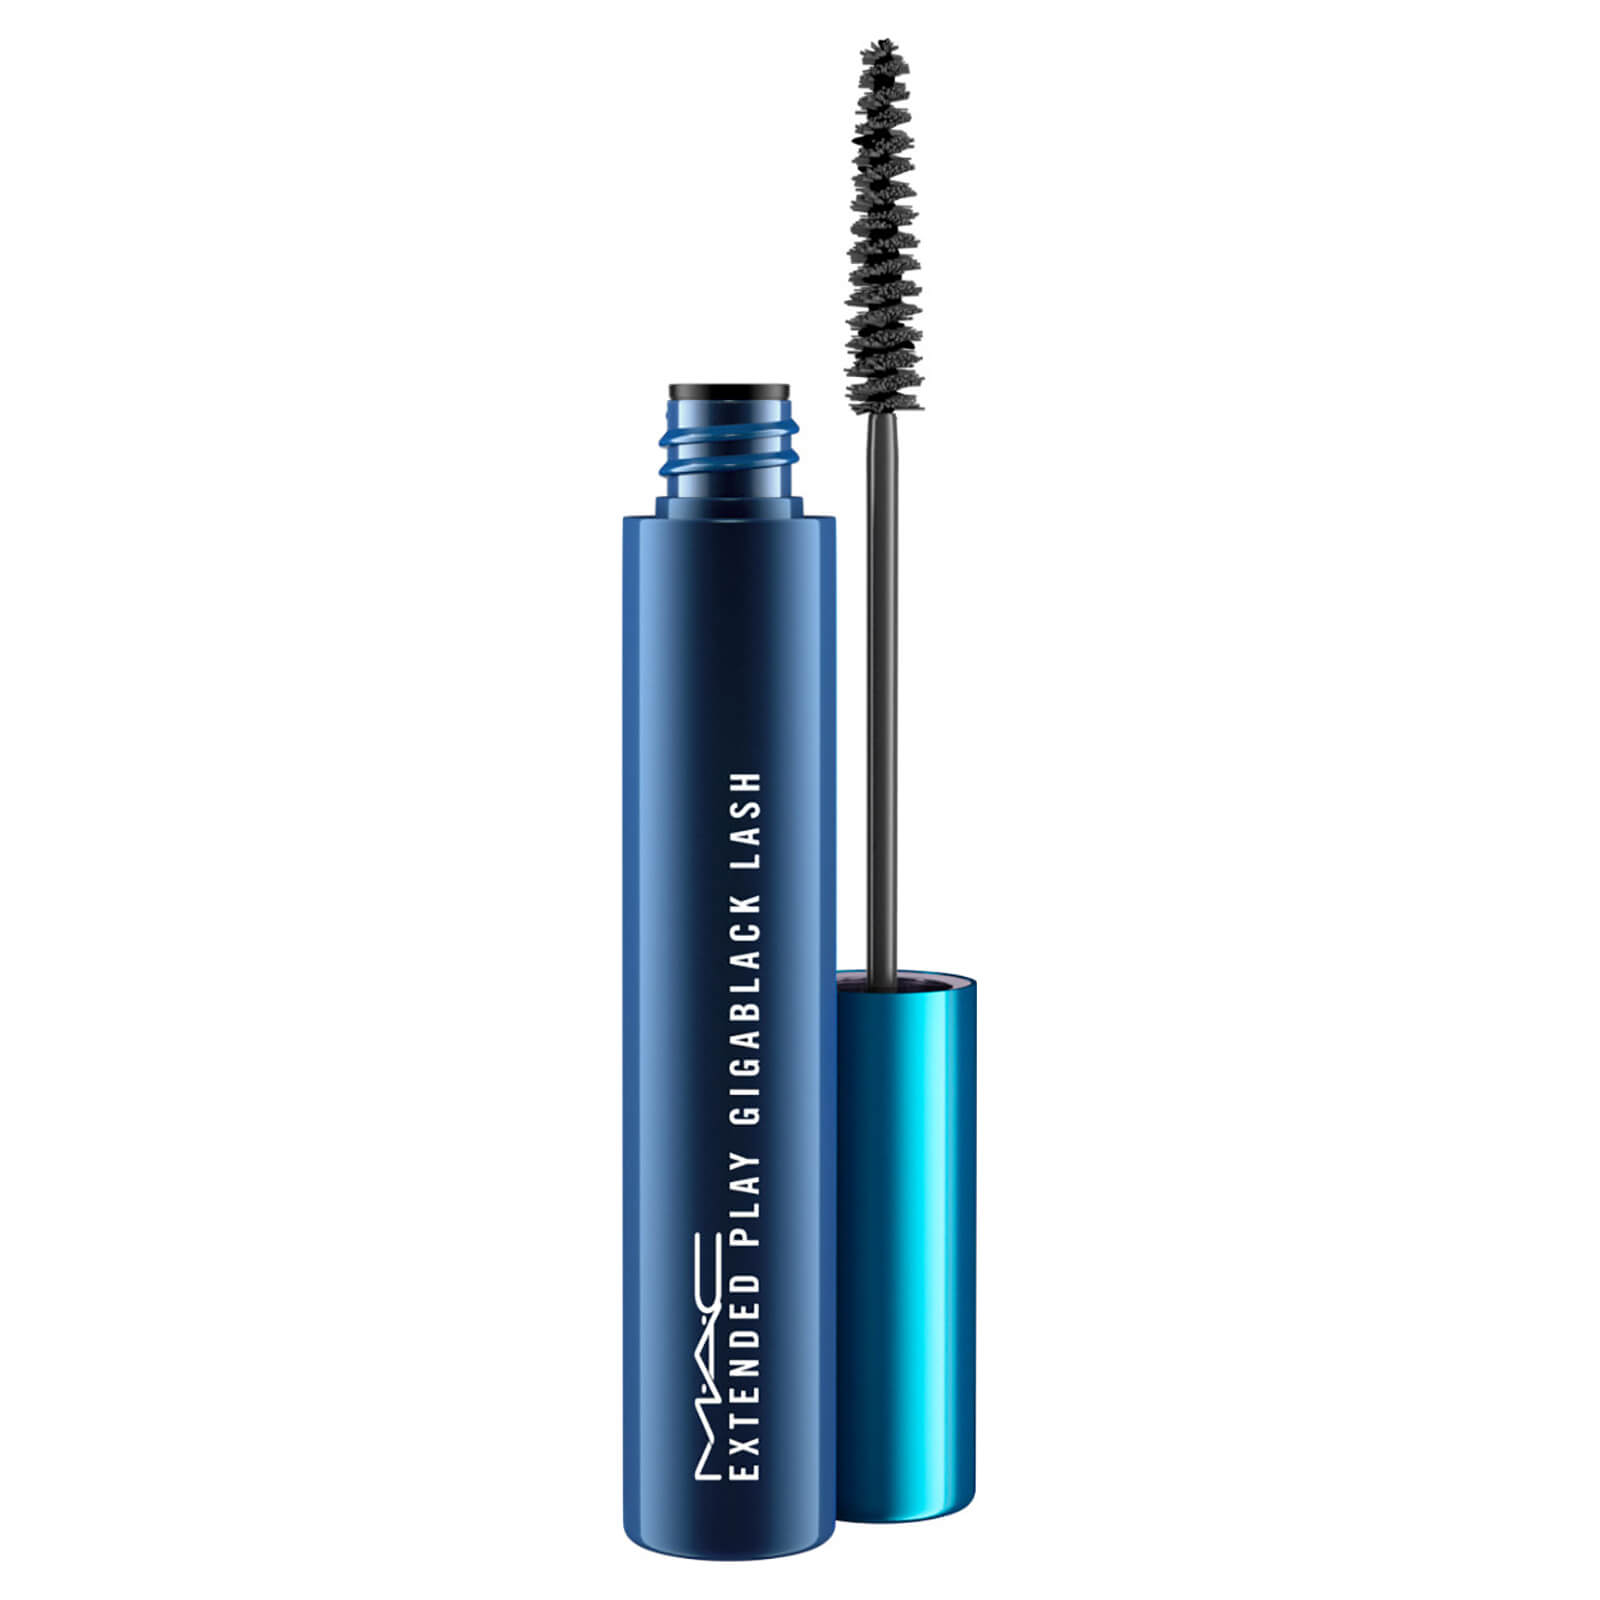 MAC Extended Play Lash Mascara